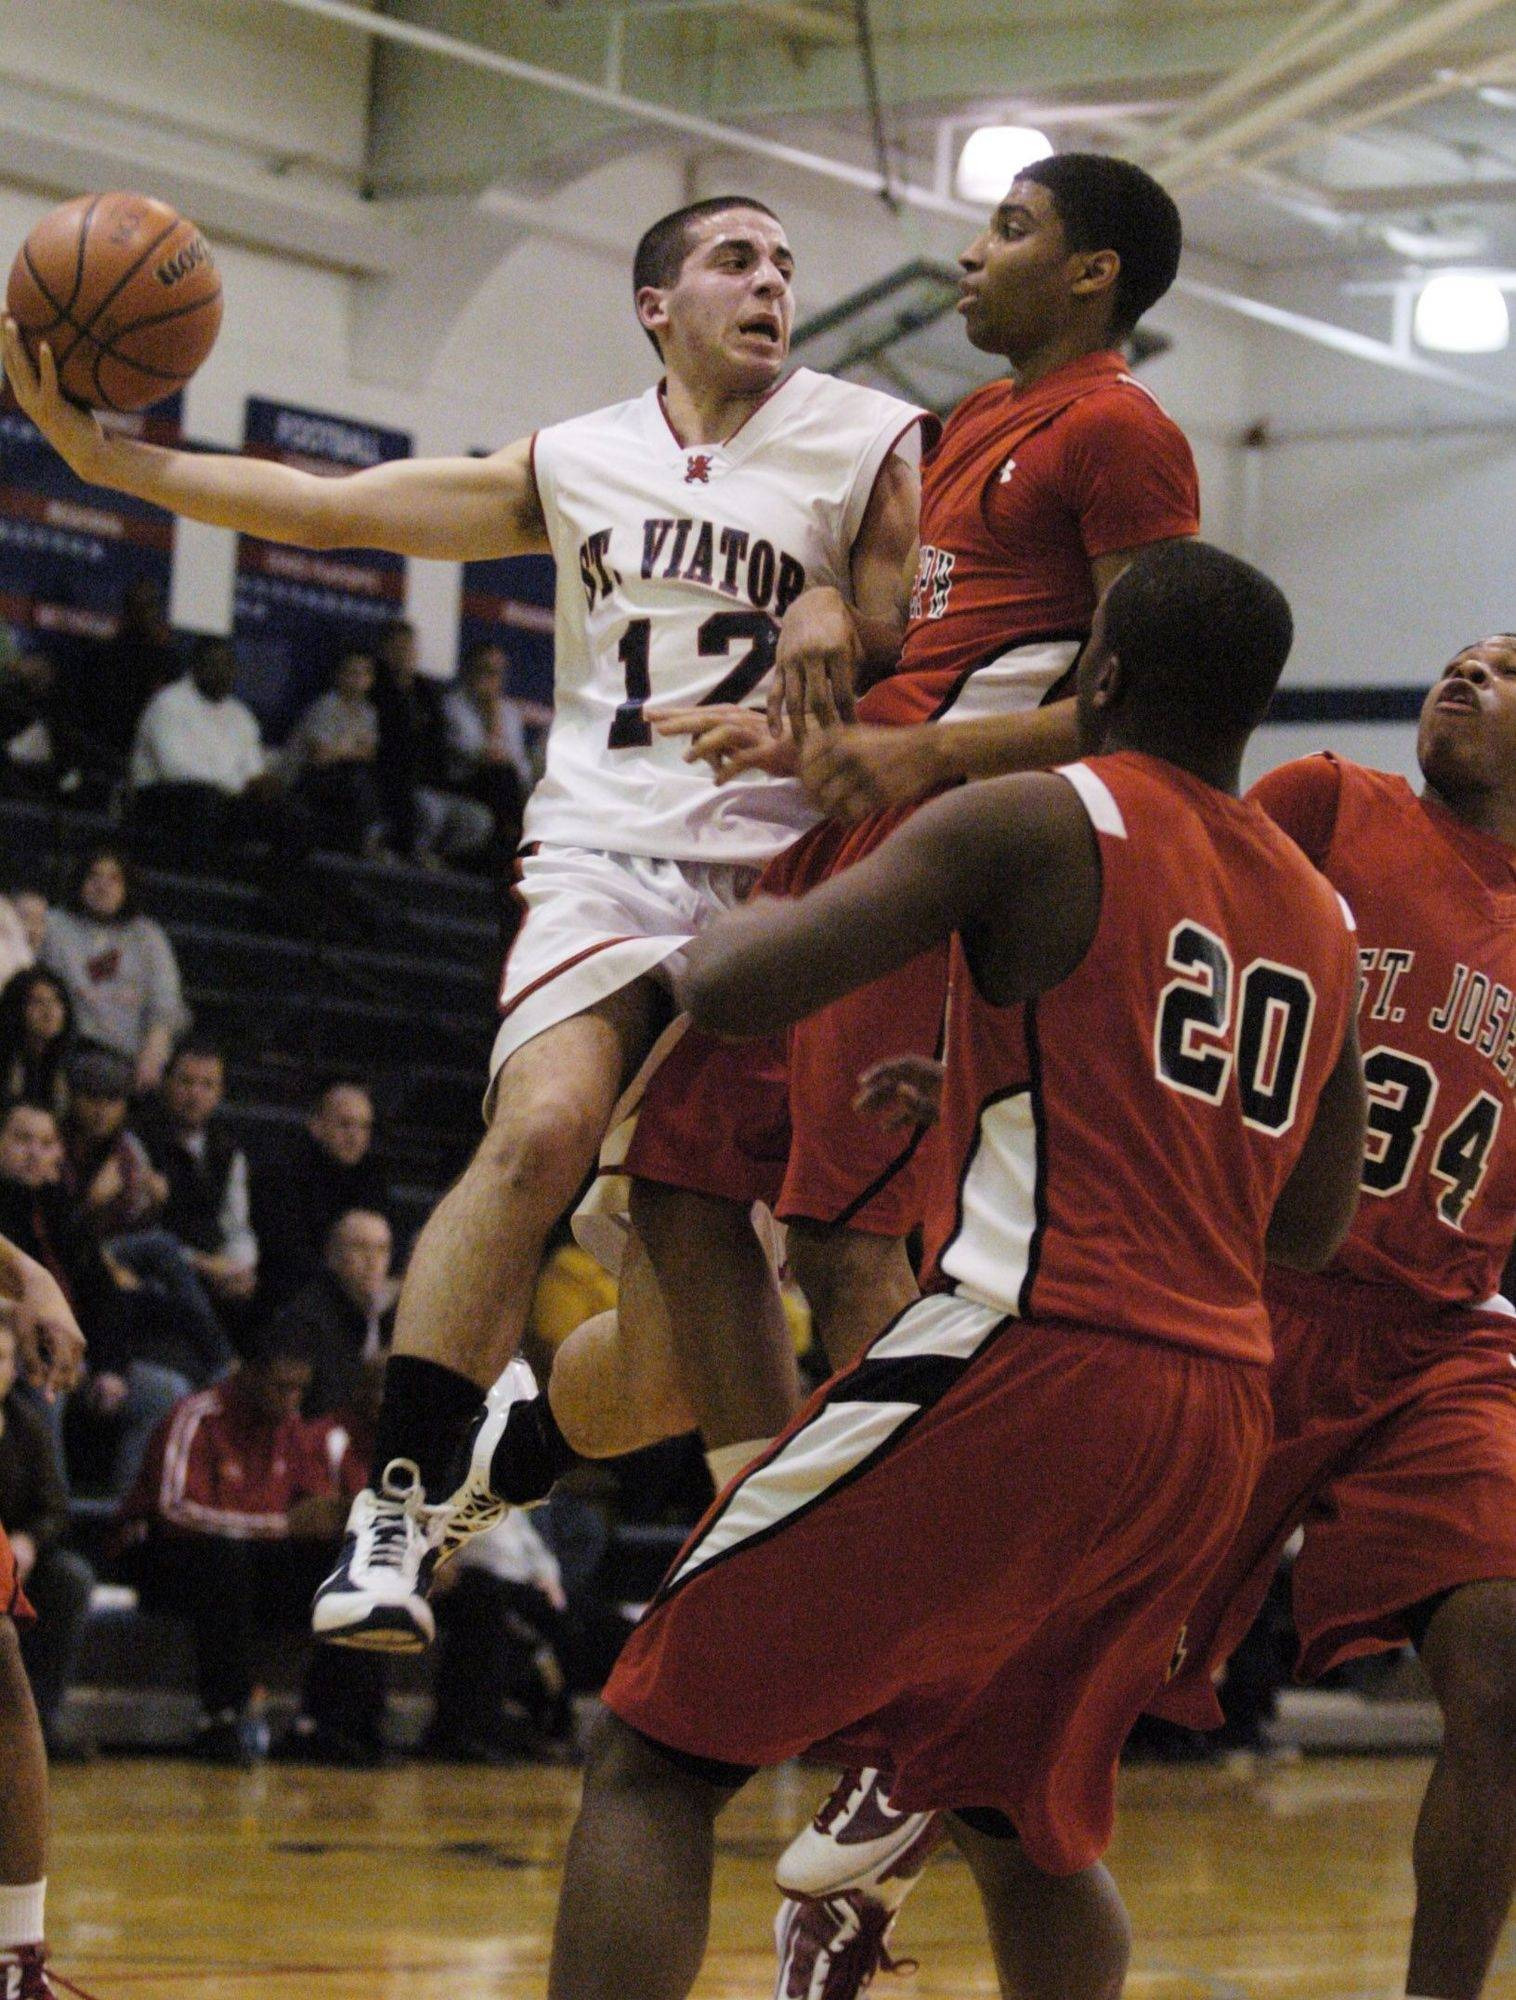 St. Viator's Alan Aboona looks to pass during Wednesday's game against St. Joseph.